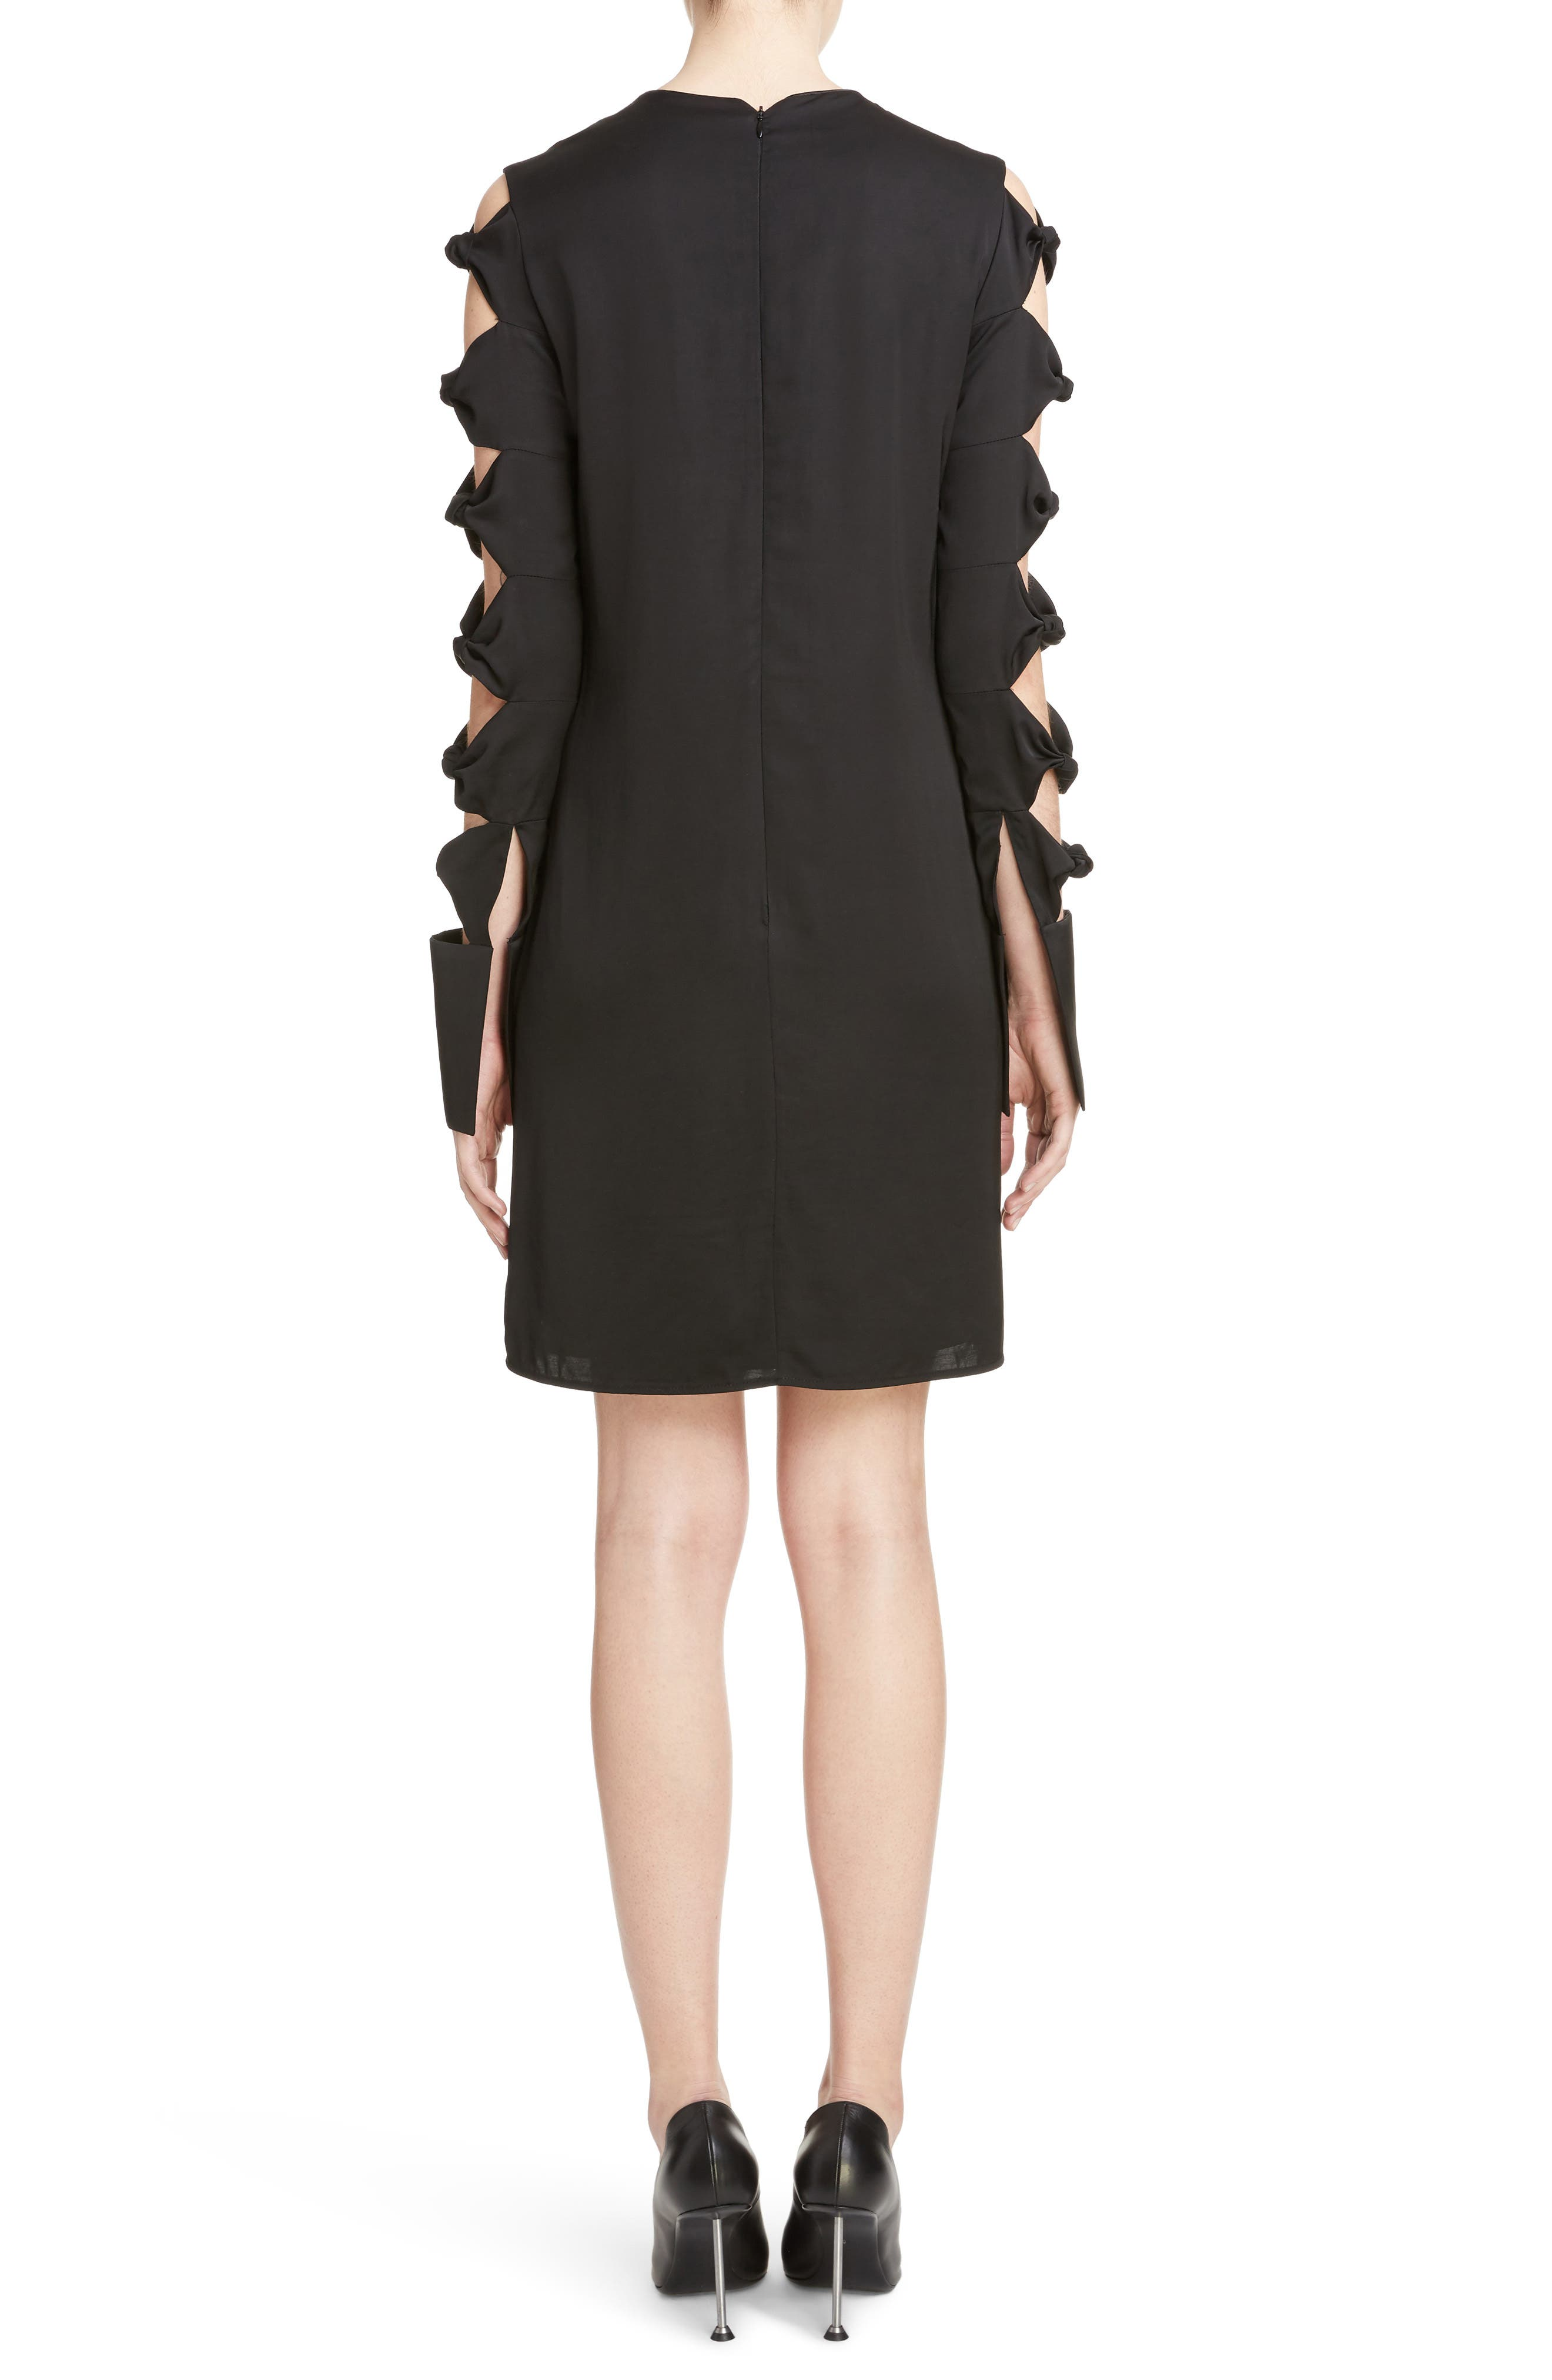 Knotted Sleeve Dress,                             Alternate thumbnail 2, color,                             001